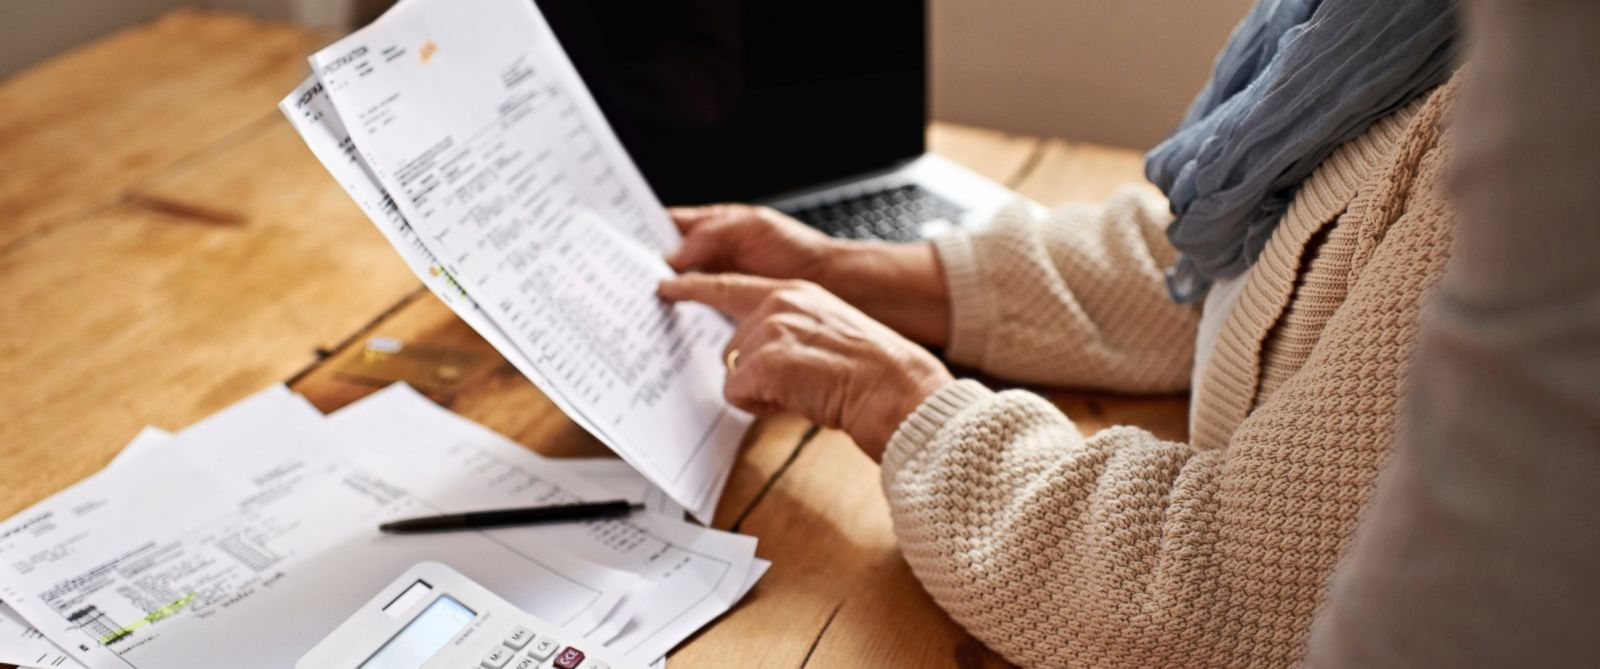 PHOTO: An estimated one in five people who prepare their own taxes overlook valuable deductions, potentially costing them hundreds of dollars in returns.